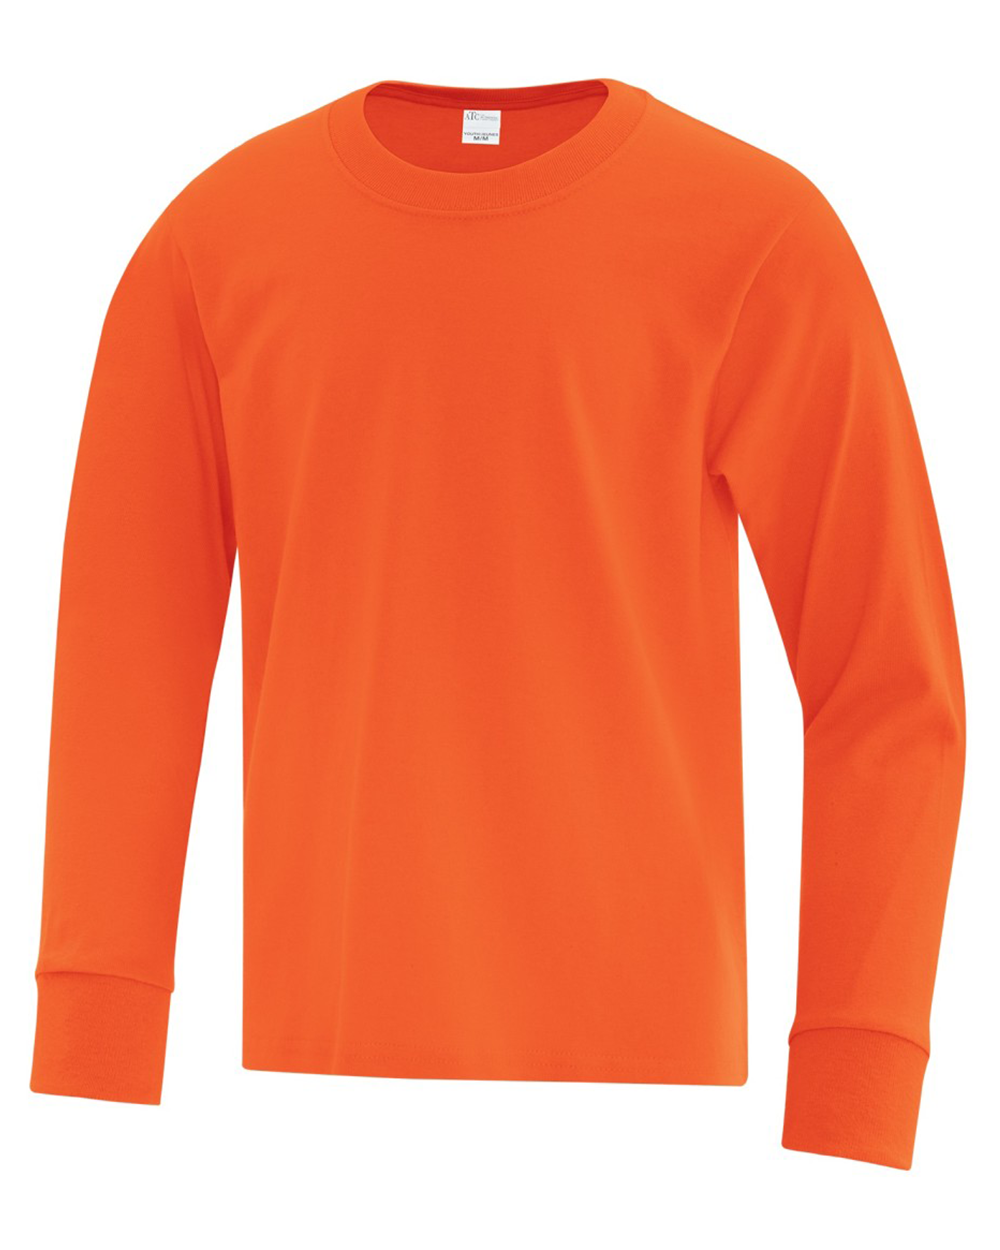 Everyday Cotton Long Sleeve Youth T-Shirt